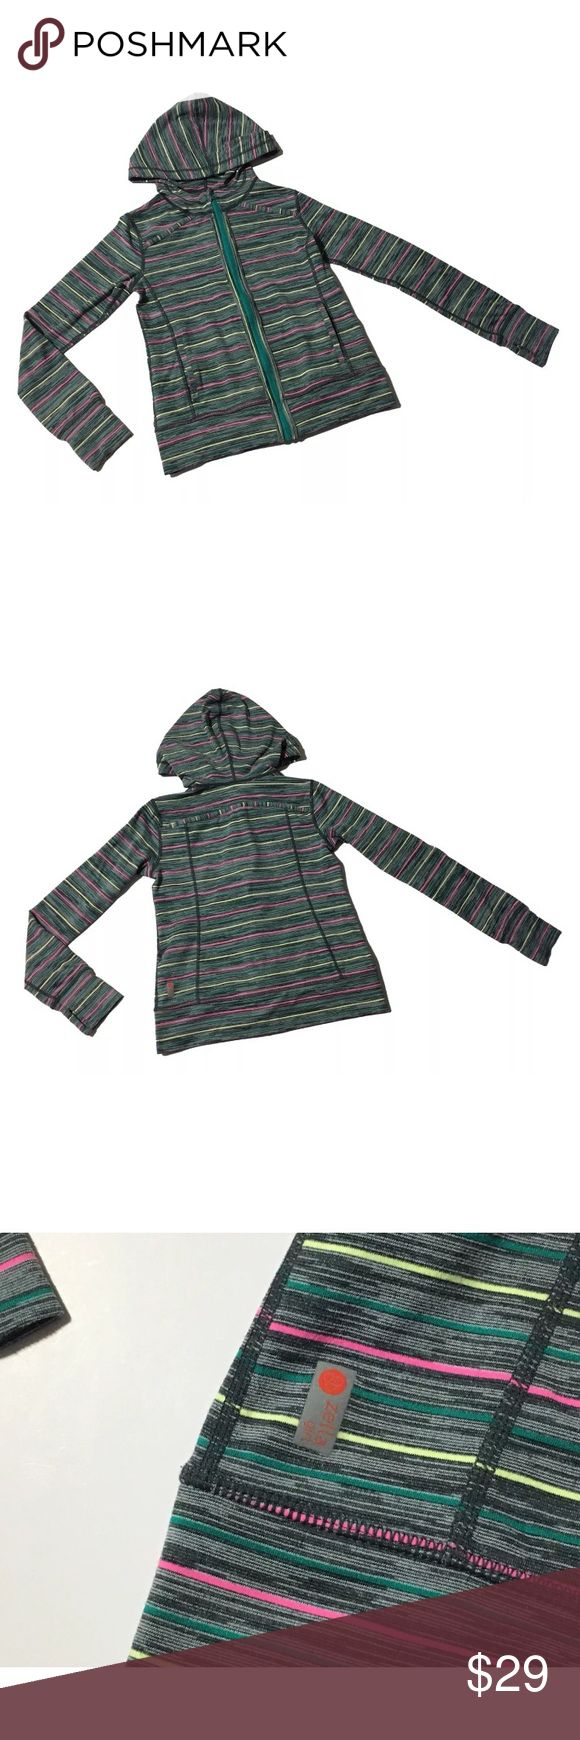 Zella Girl Zip Up Sweatshirt Hoodie Large 10/12 Zella Girl Zip Up Sweatshirt Hoodie Striped Multi Color Gray size Large 10/12, Long Sleeve, Multi color stripes and gray, thumb holes, hooded, two pockets on front, blue zip up in front.  Length, Shoulder to Bottom: 19 inches Armpit to Armpit: 14 1/2 inches Armpit to end of Sleeve: 17 inches  Inventory# AI15 Zella Girl Shirts & Tops Sweatshirts & Hoodies